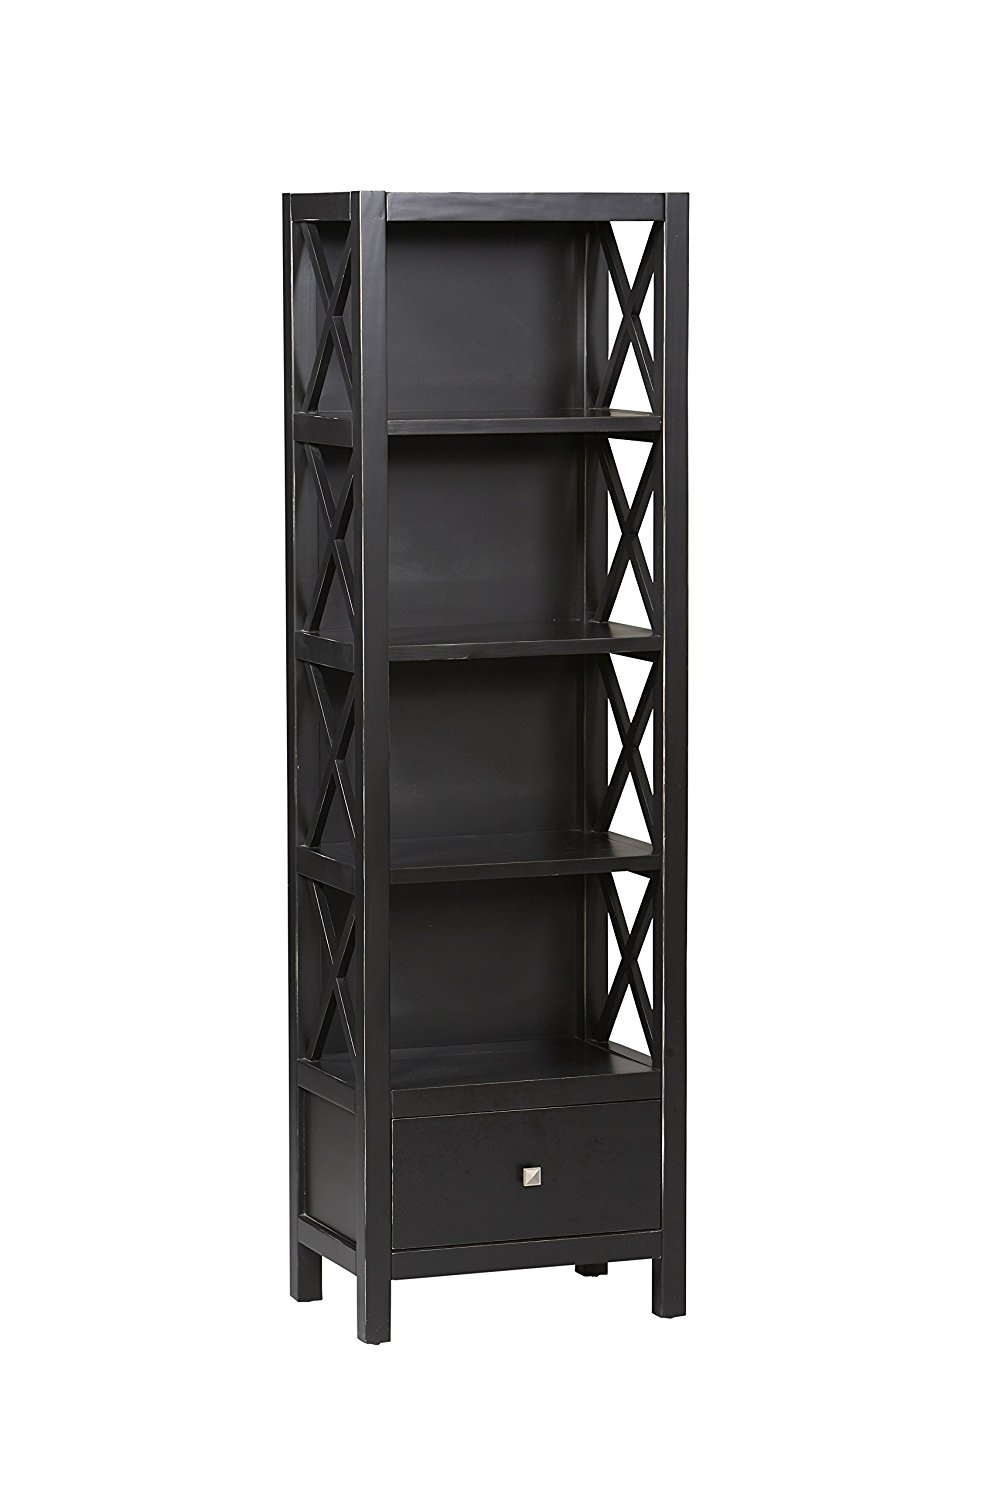 Tall Black Narrow Bookshelf